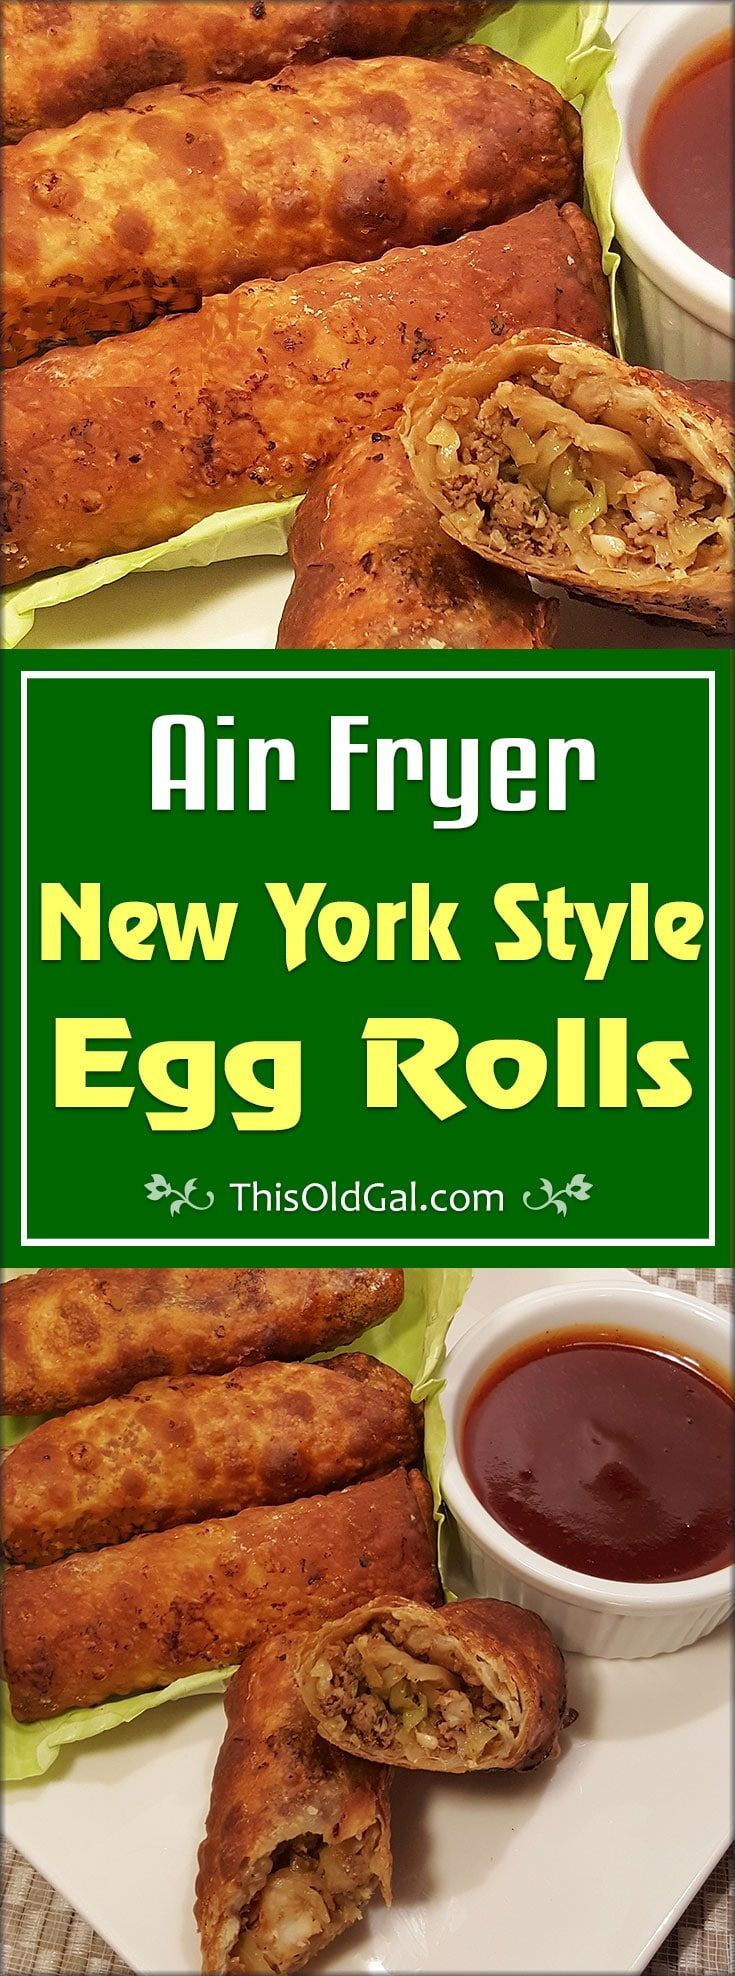 Less calories than deep fried New York Style Egg Rolls, these Air Fryer New York Style Egg Rolls are as close as you can get! via @thisoldgalcooks